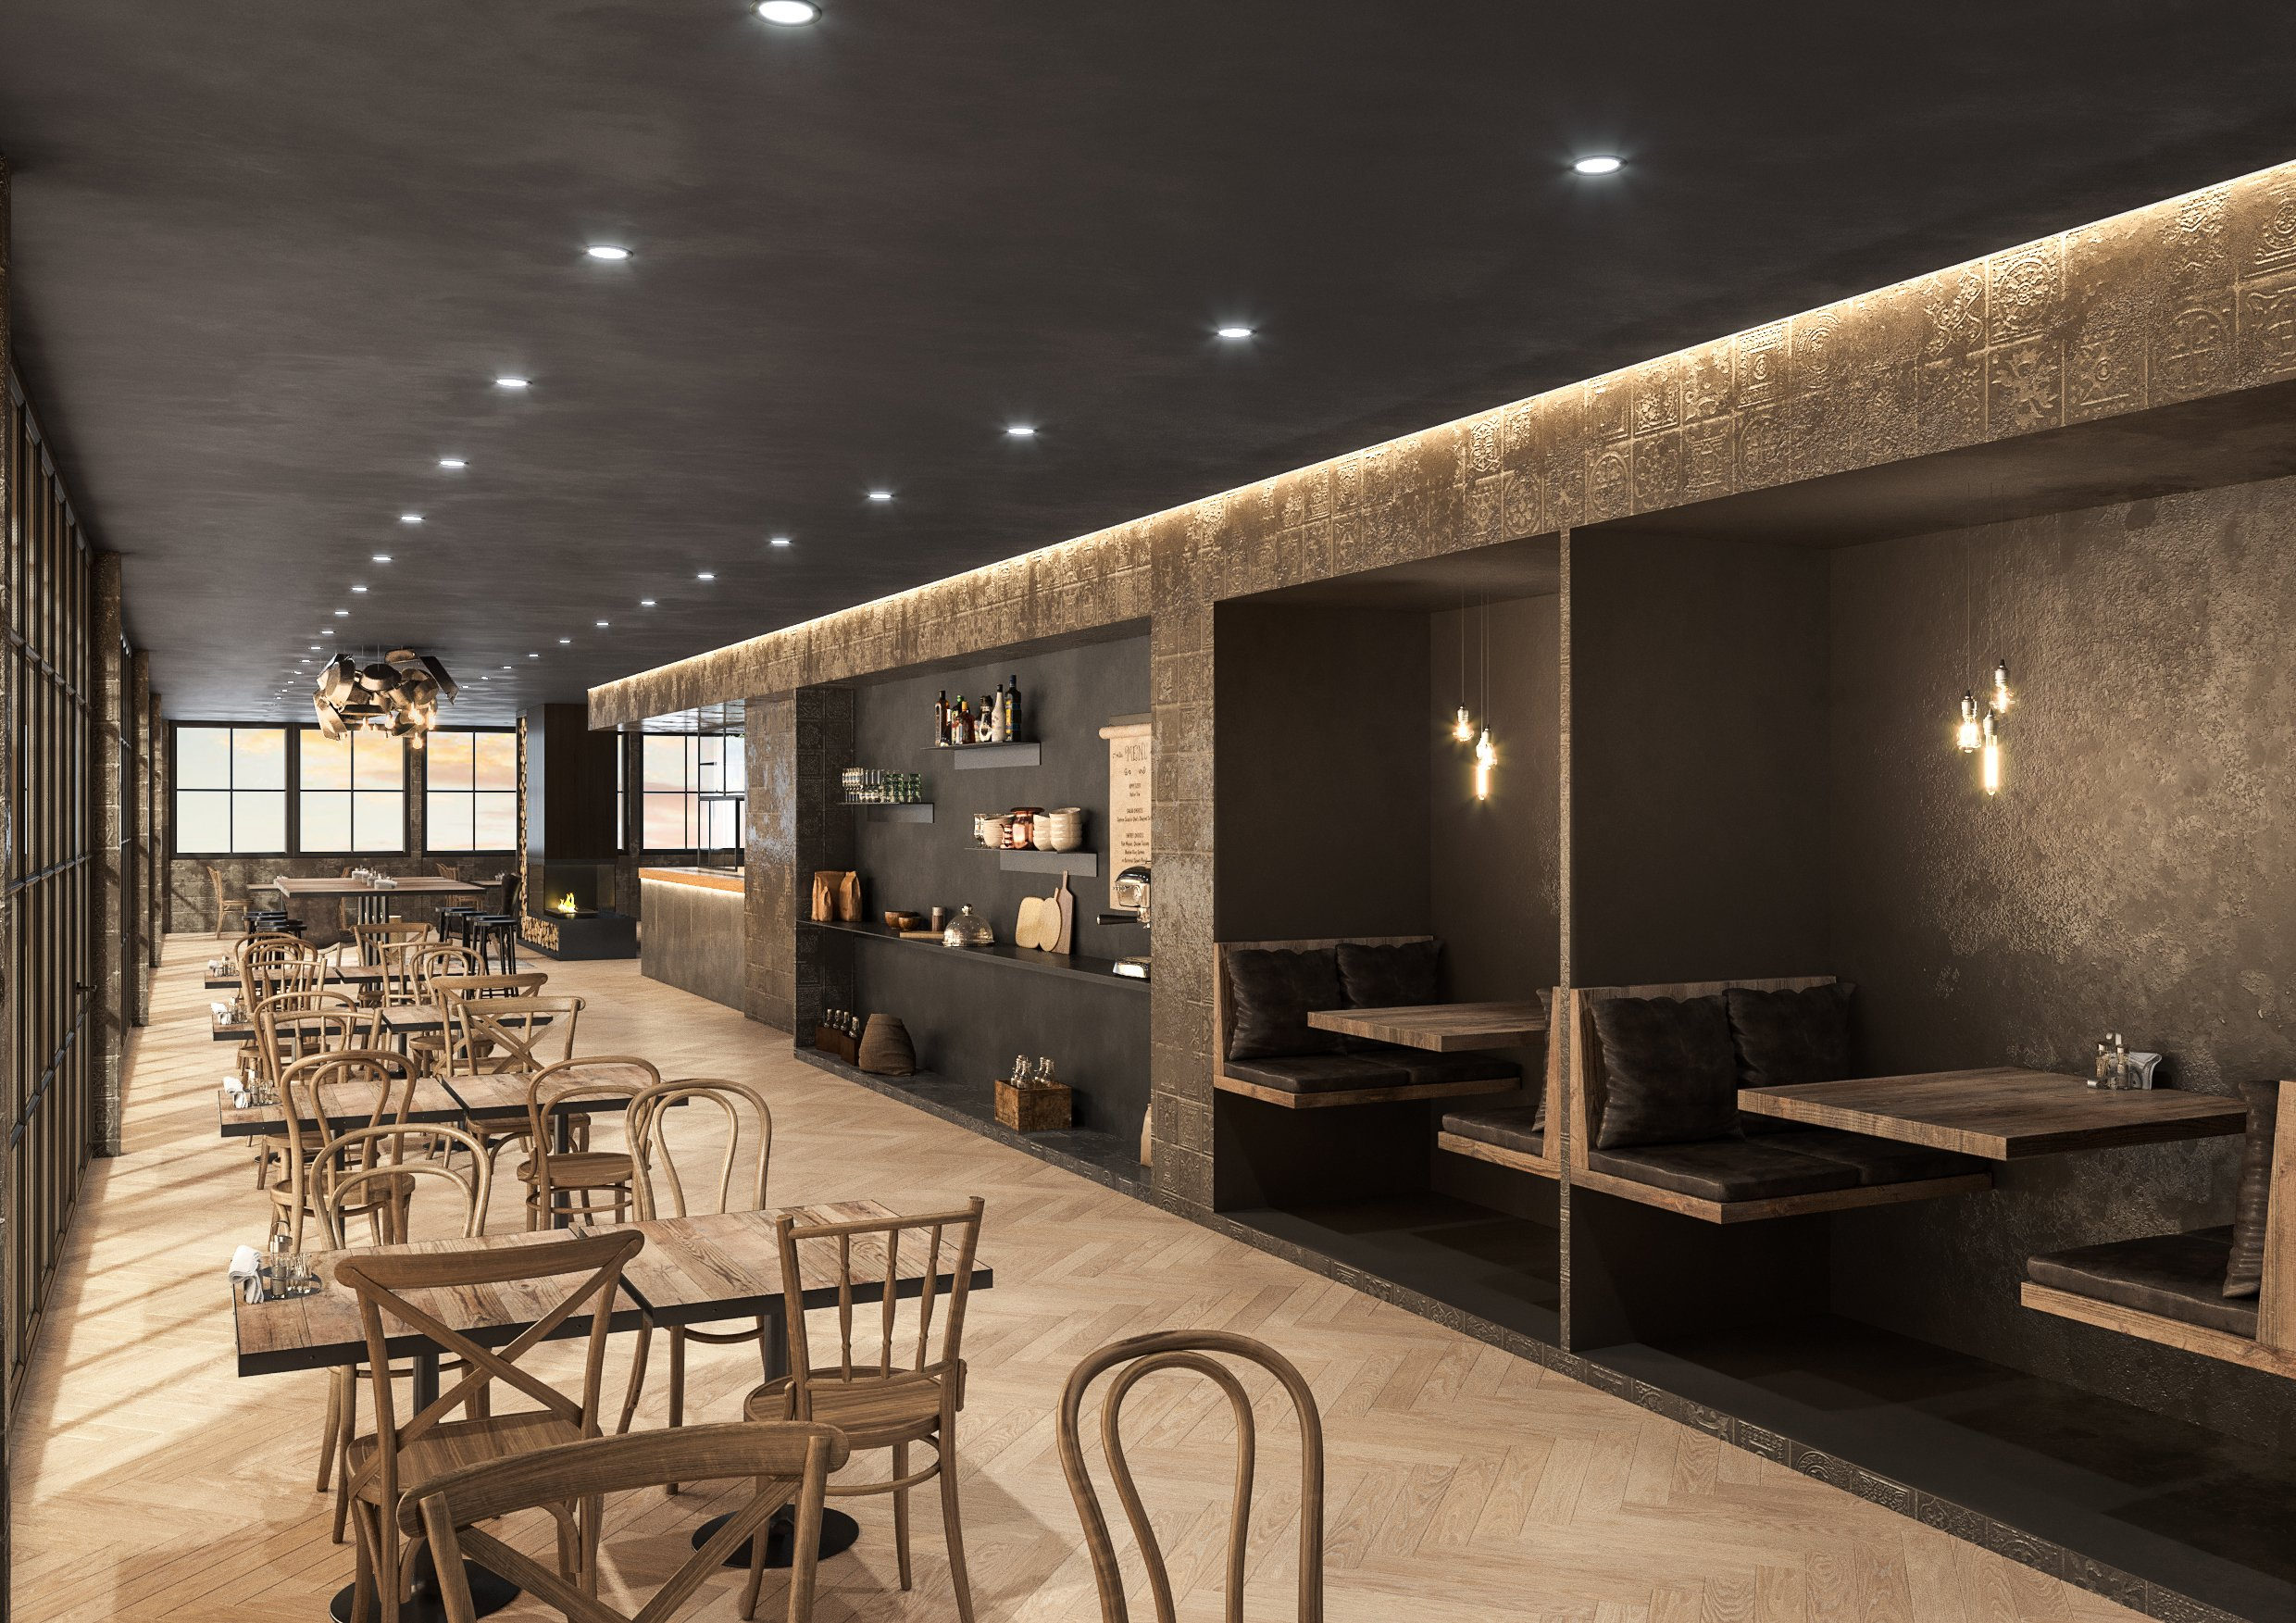 Restaurant 3D Visualization for a Design Project